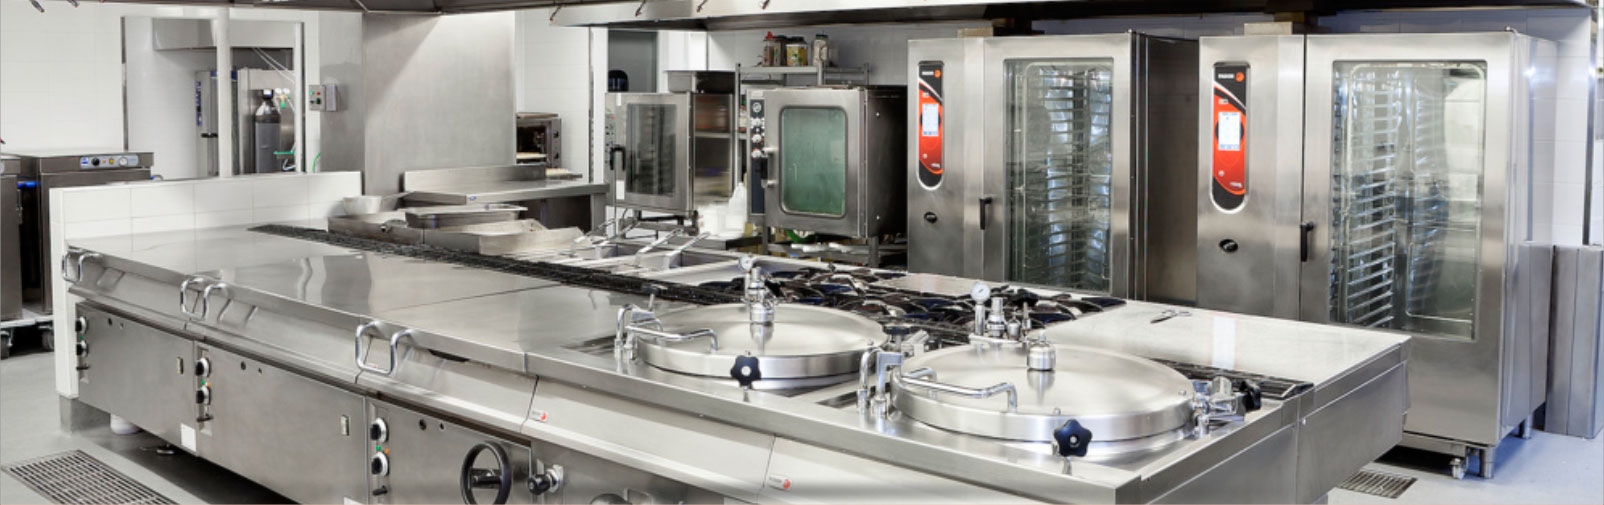 Where to buy professional kitchen equipment for cafes